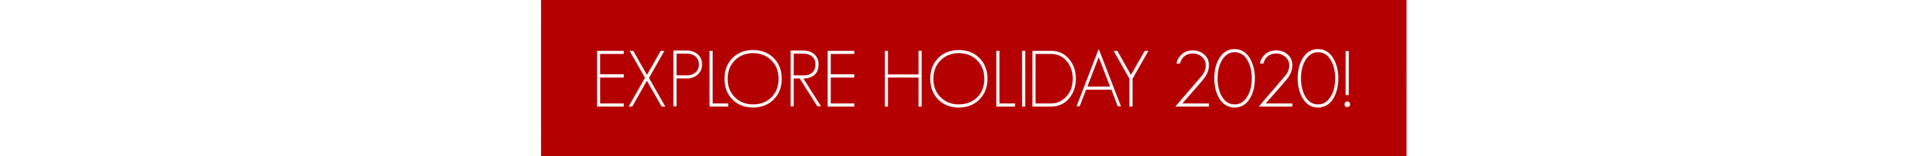 Explore holiday button 2020